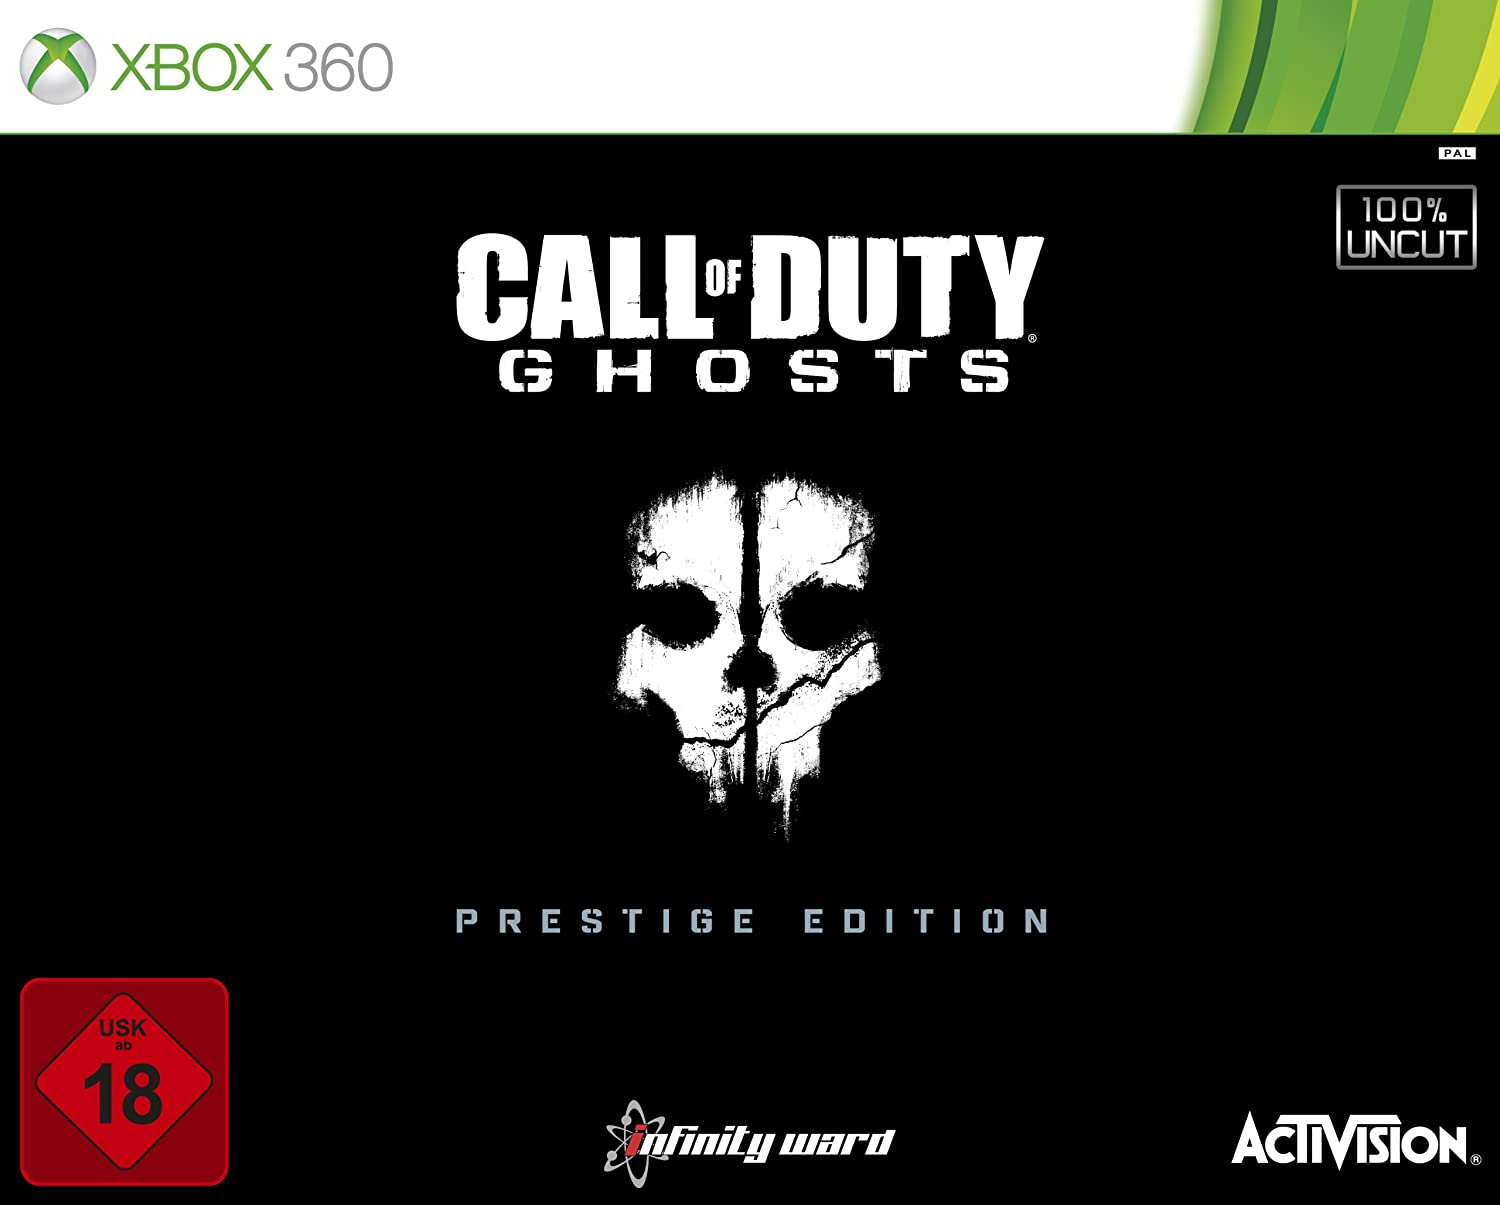 Call of Duty: Ghosts Prestige Edition Xbox 360 amazon